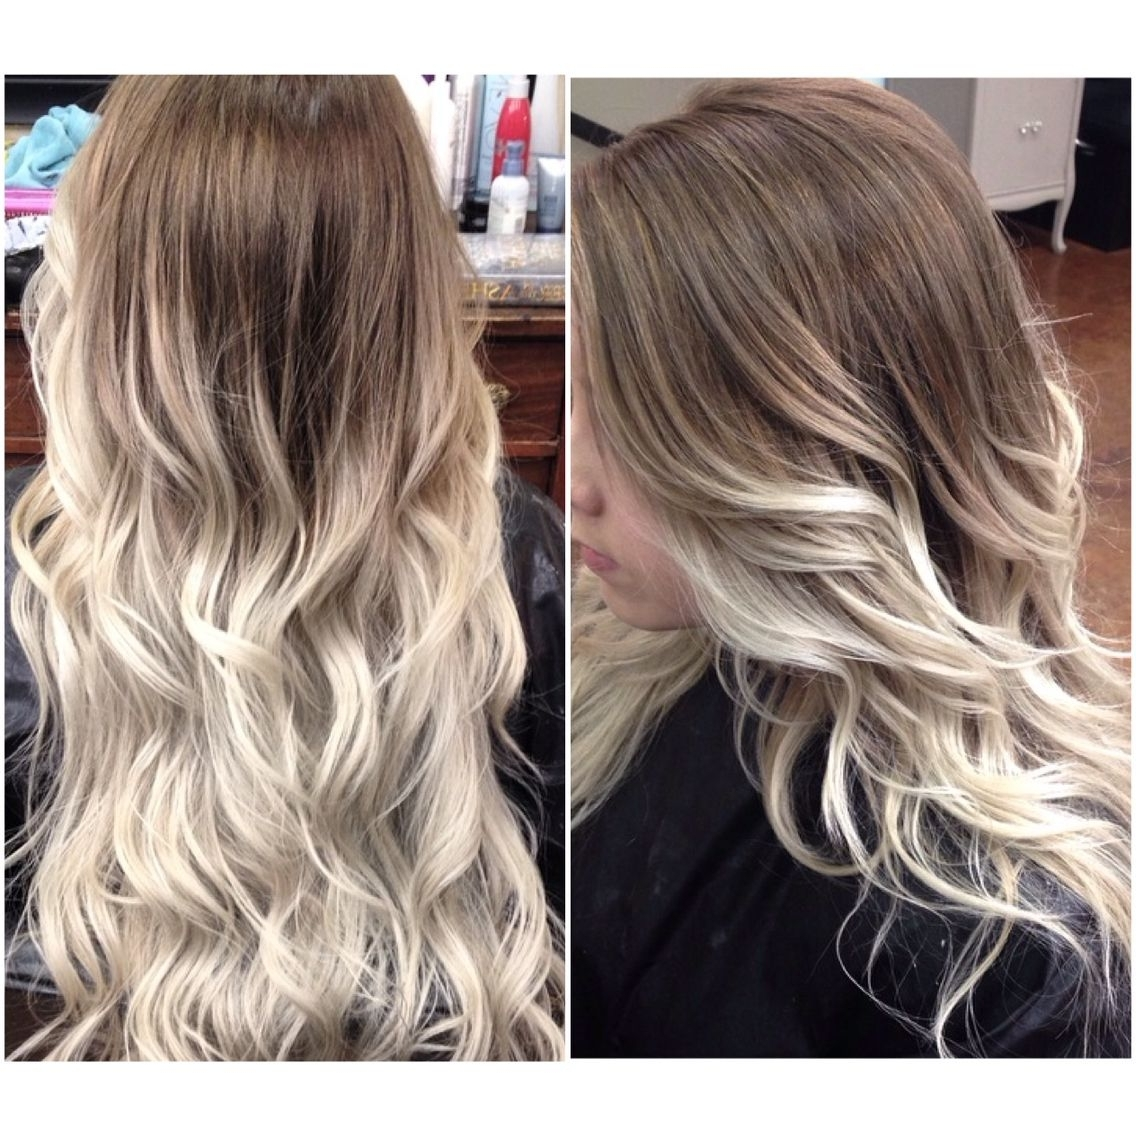 Icy Blonde Ombre! #icyblonde #ashblonde #balayge #ombre (View 4 of 20)